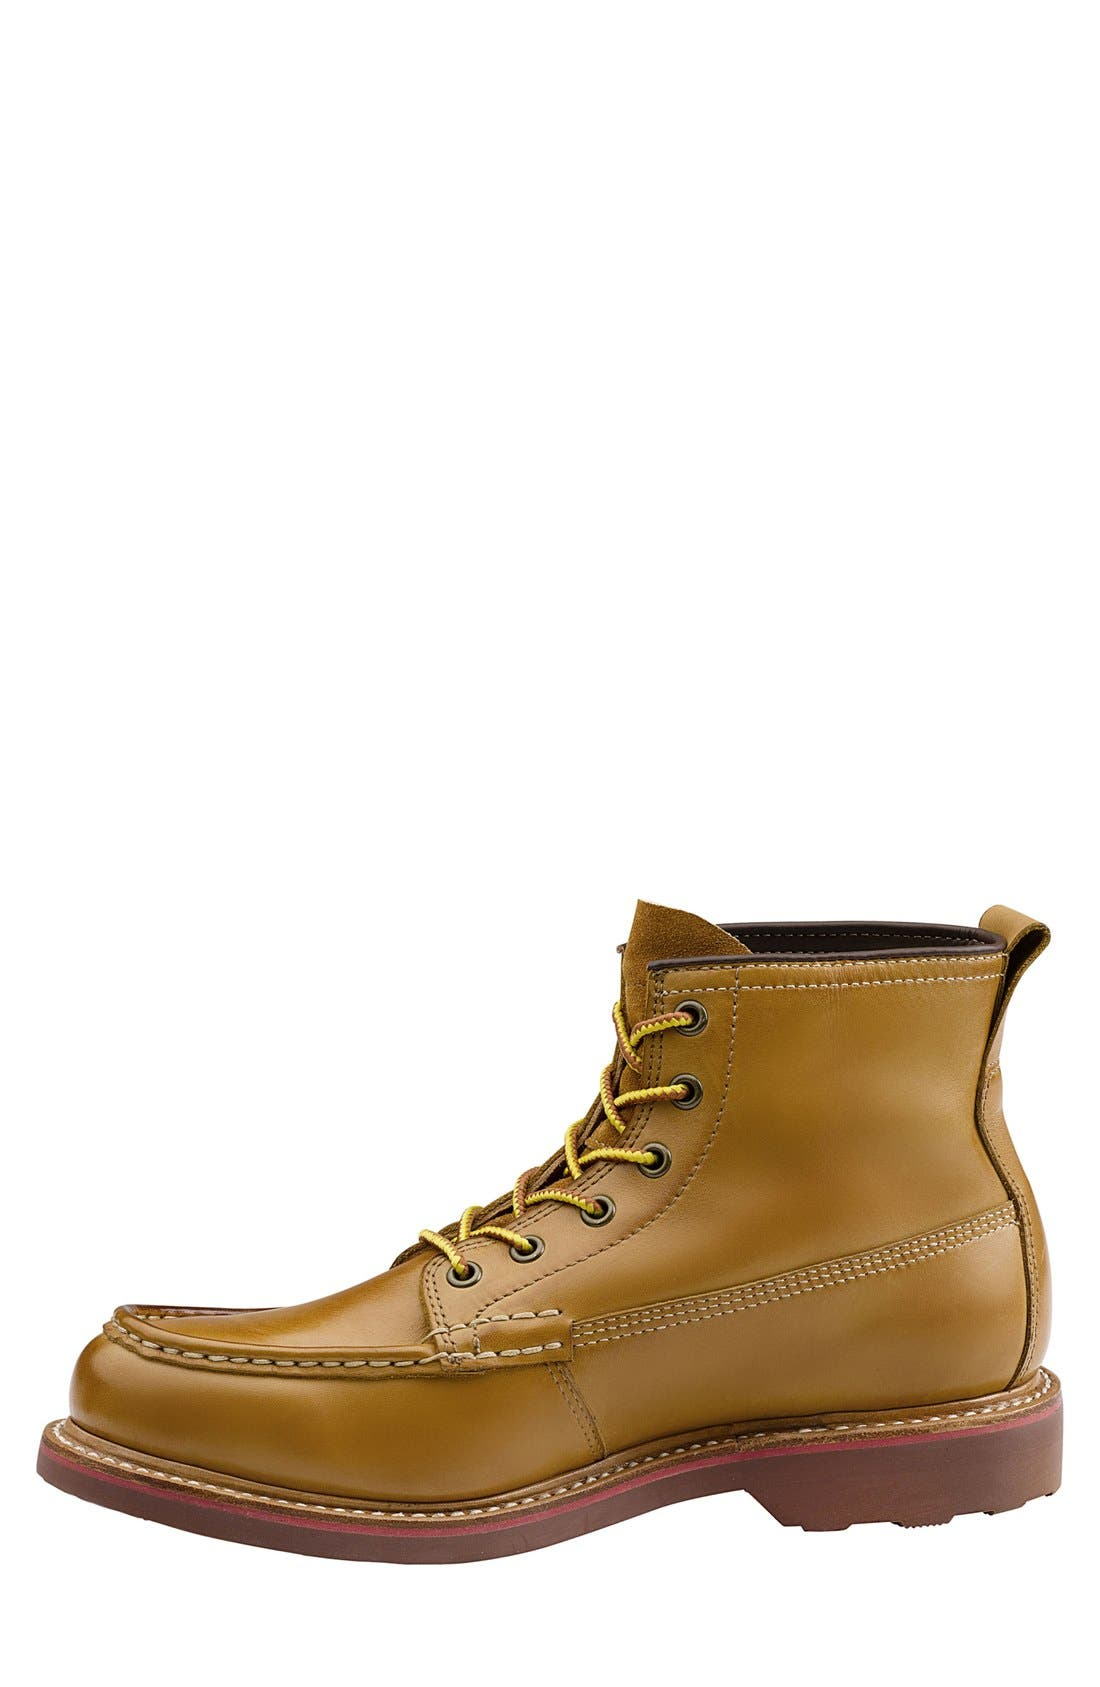 'Ashby' Moc Toe Boot,                             Alternate thumbnail 6, color,